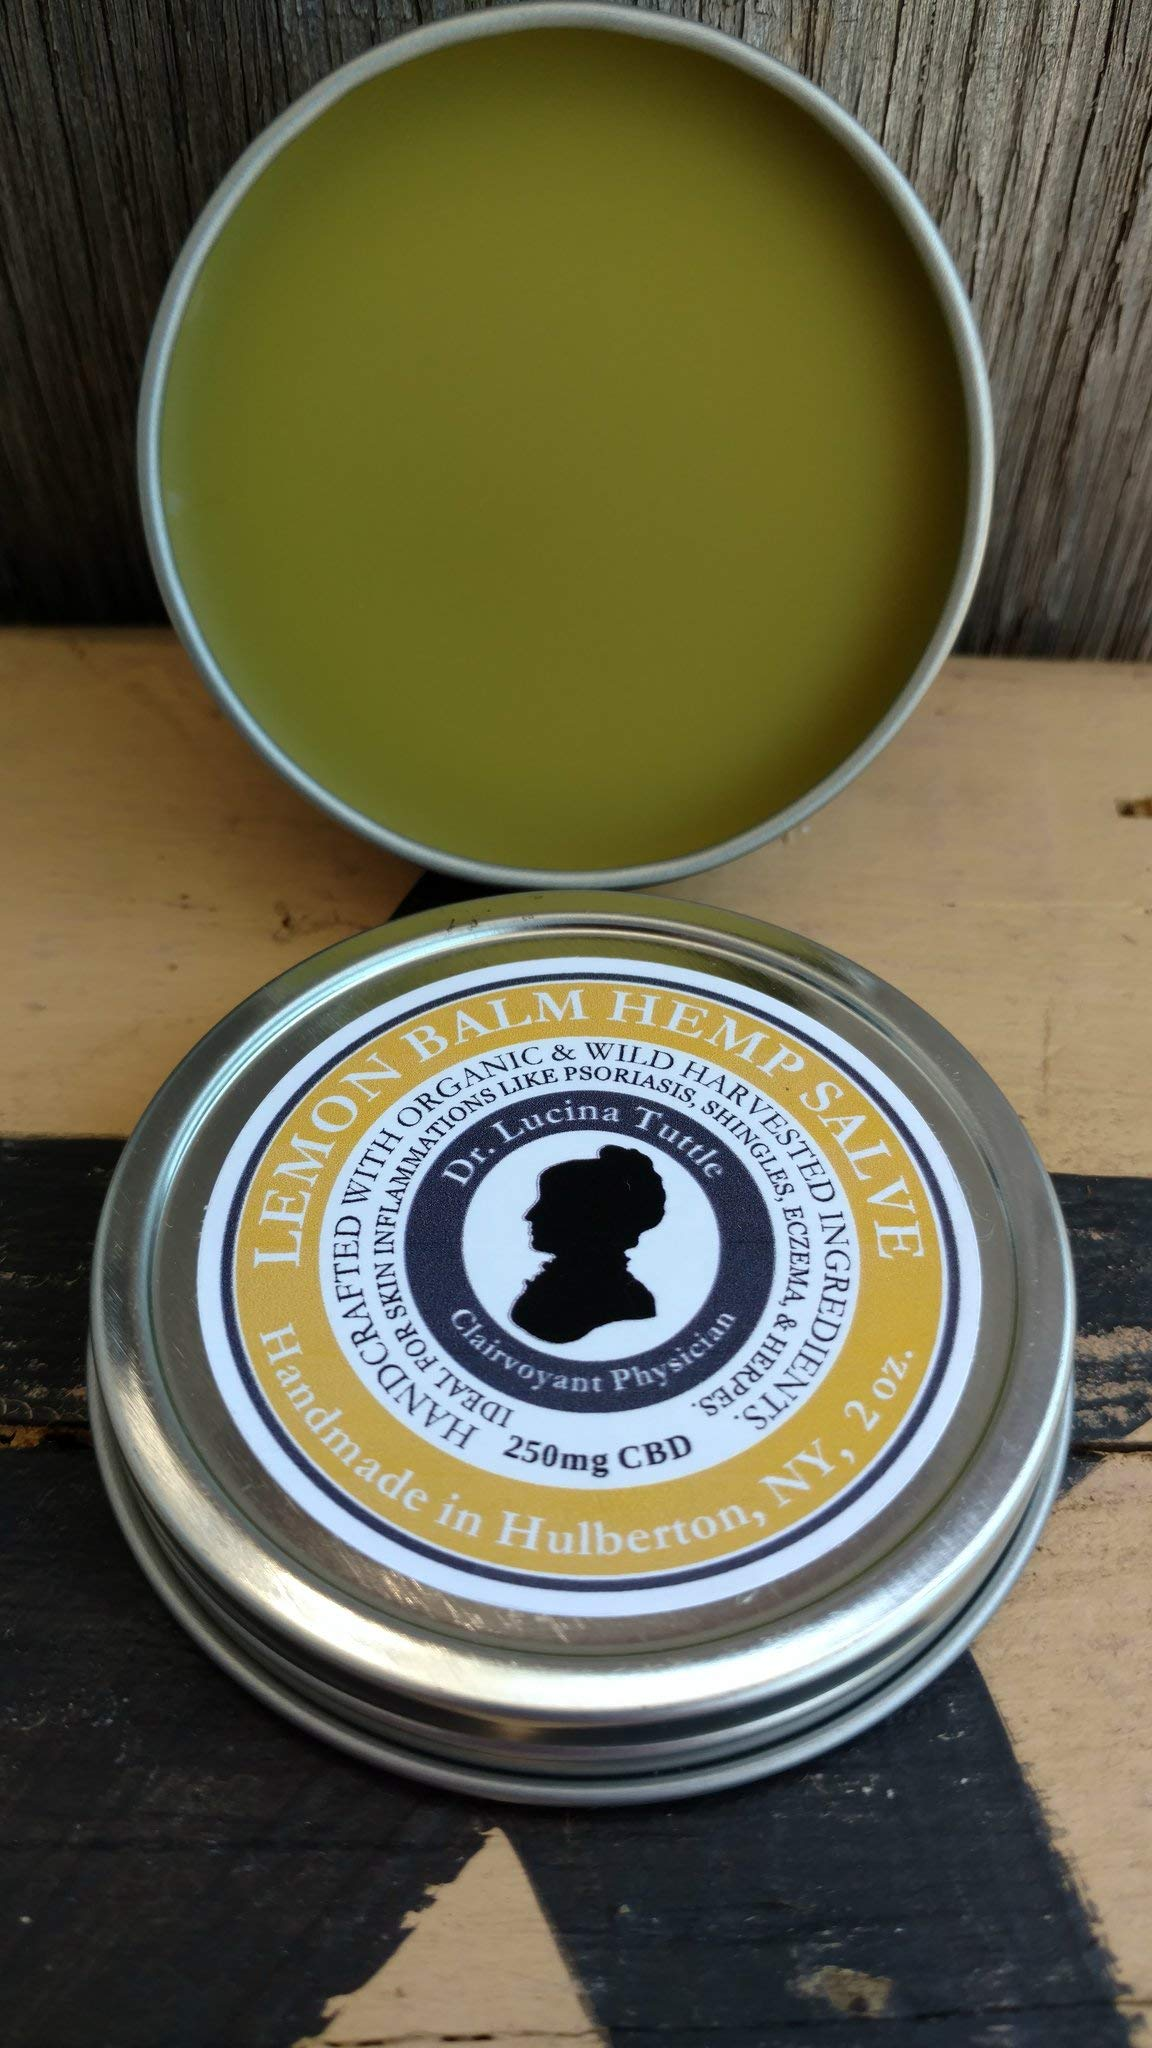 Dr. Tuttle's Lemon Balm Hemp Extract Salve Full Spectrum 2oz 200mg